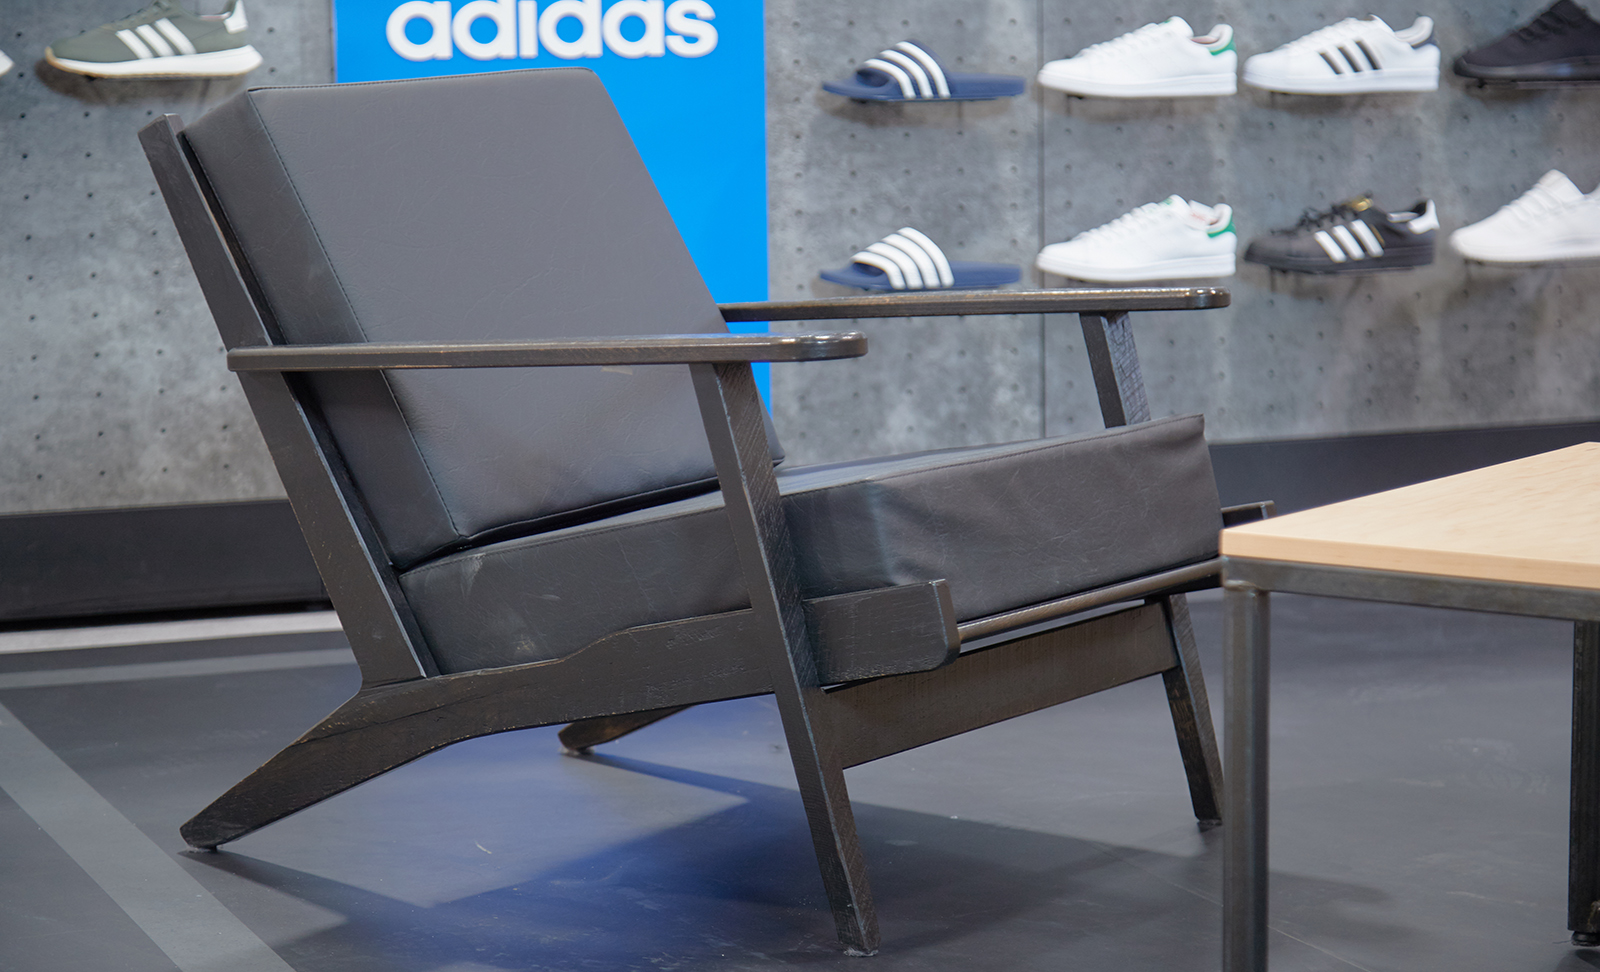 Custom built fixtures lie within the adidas retail space.